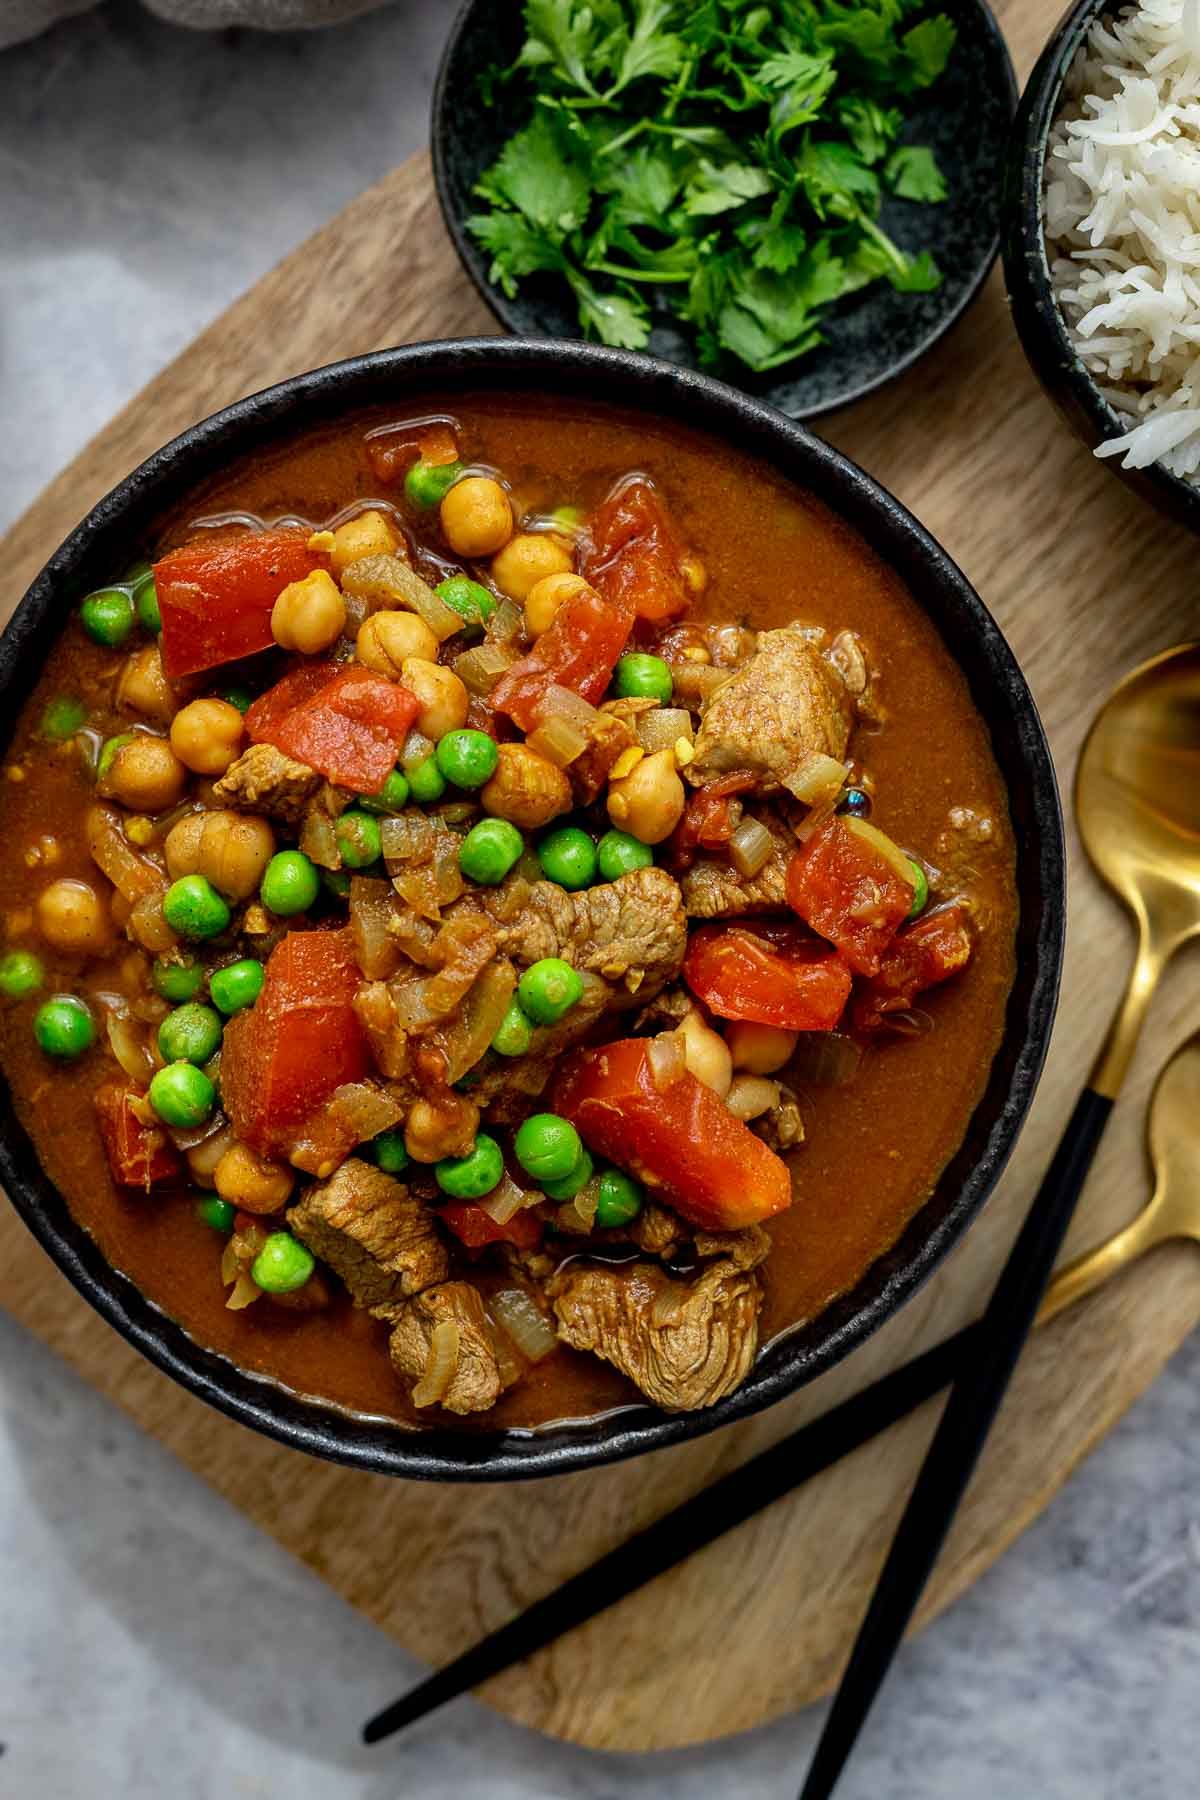 Indian Lamb Curry with Peas, Chickpeas, Tomatoes and Basmati Rice